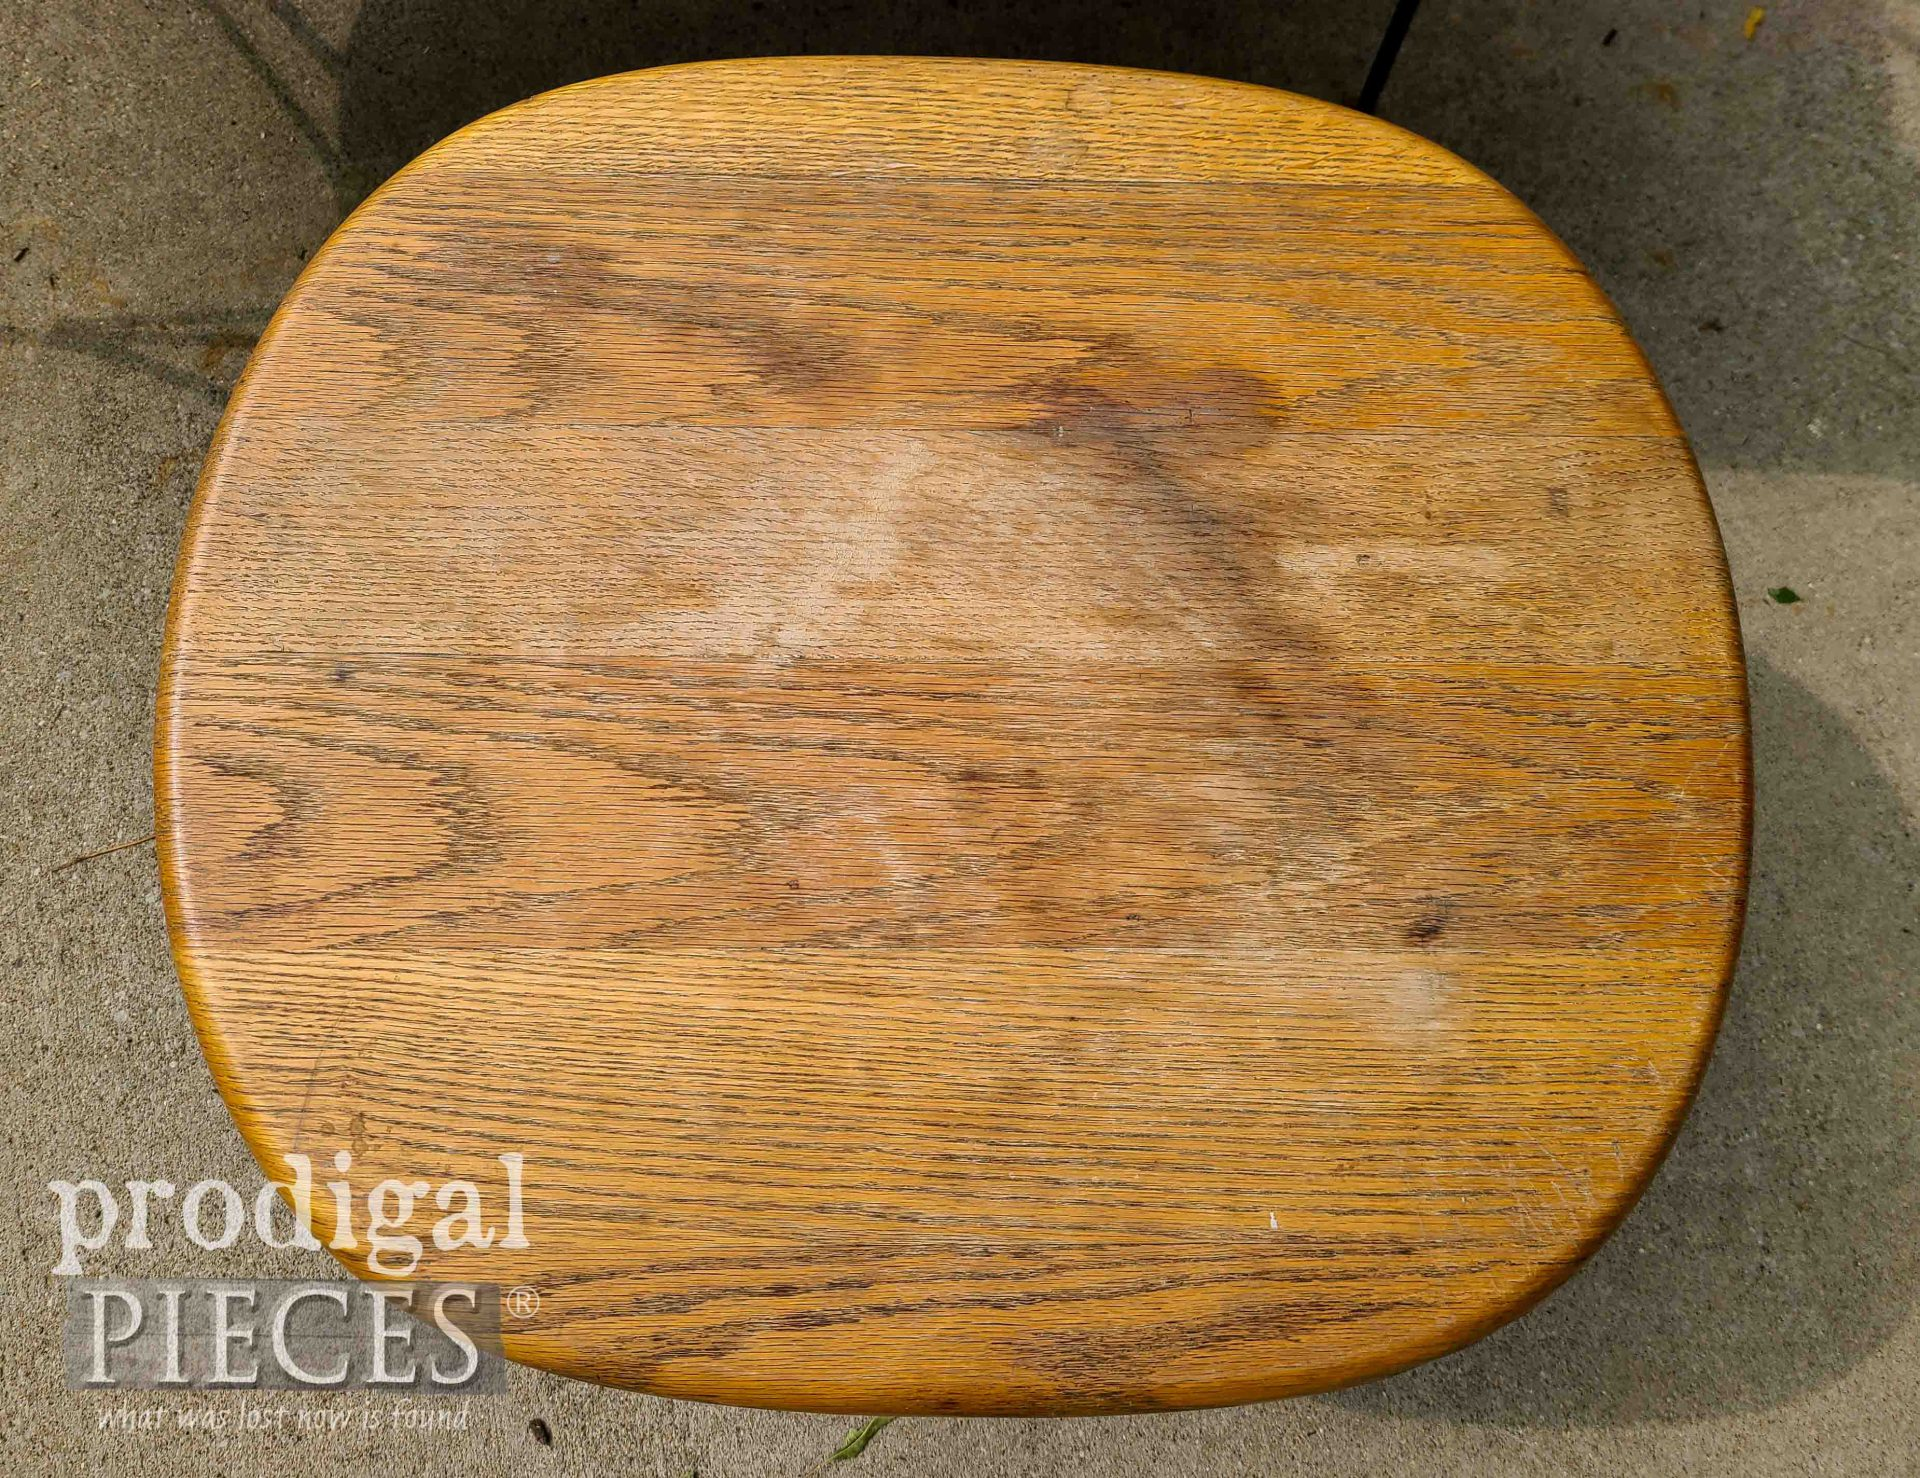 Water Damaged Side Table Top | prodigalpieces.com